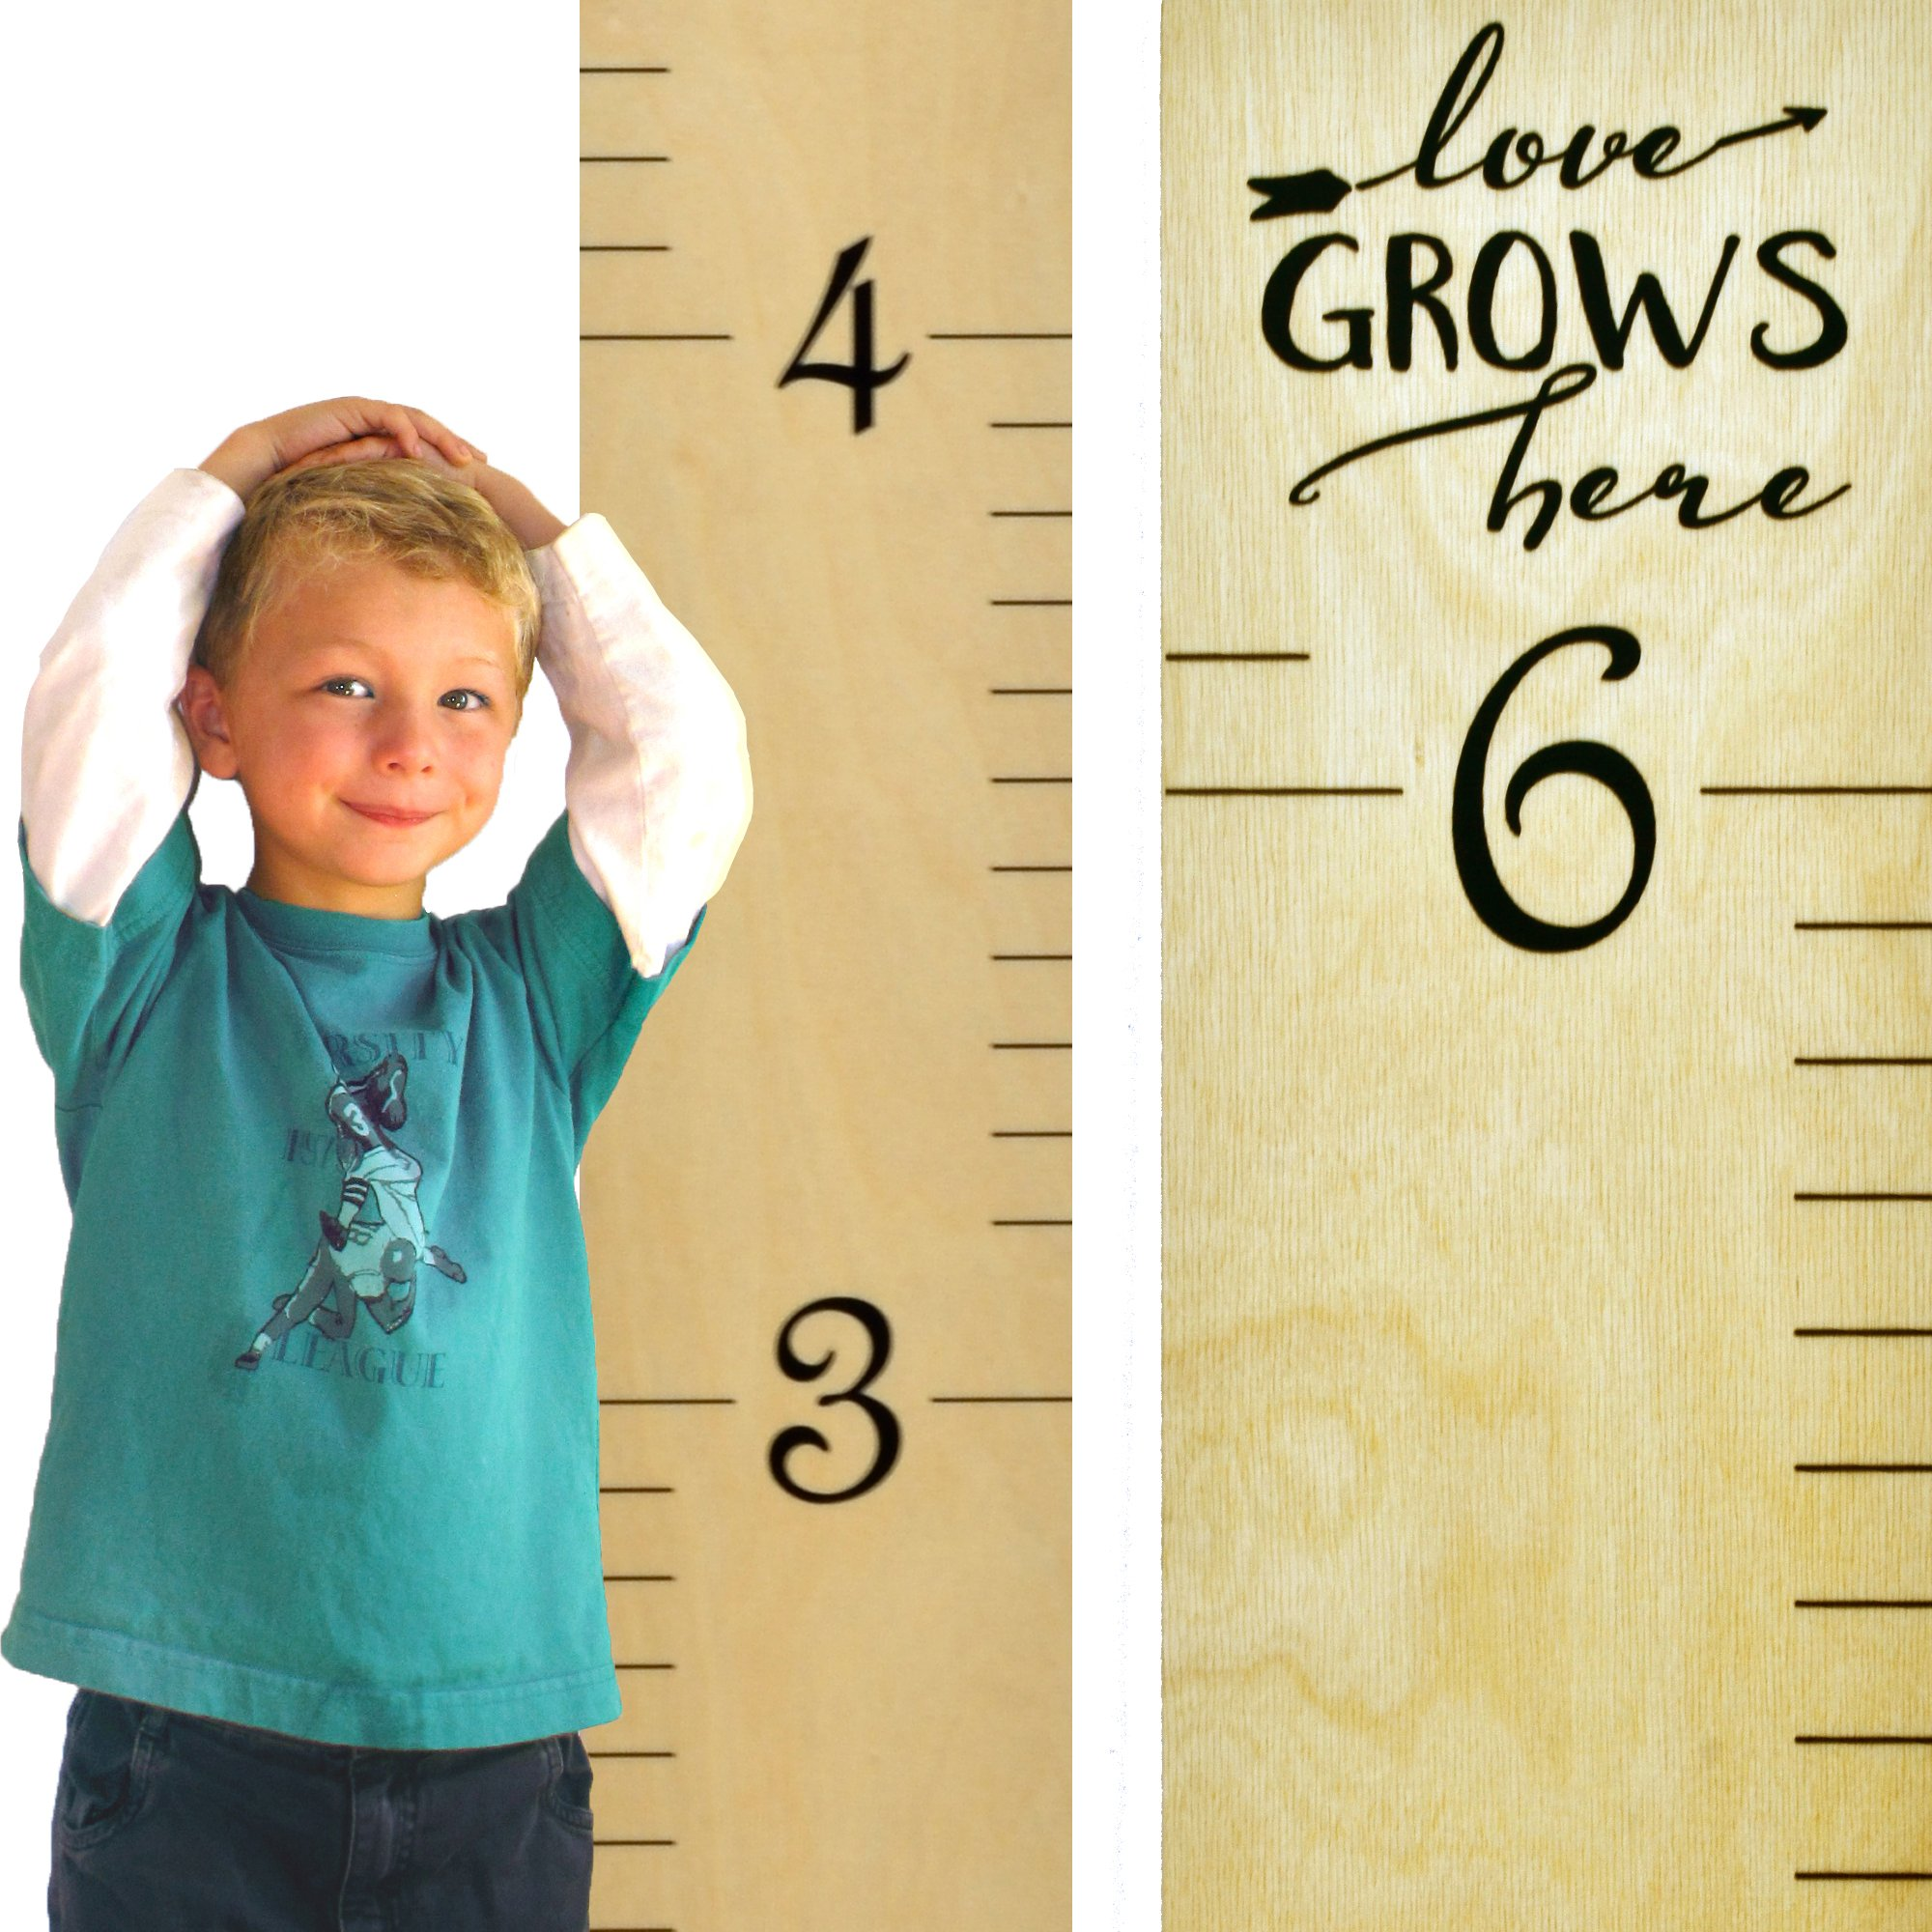 "Growth Chart Art | Wooden Wall Growth Chart Ruler for Kids, Girls + Boys | Measuring Kids Height Wall Décor | Naked Birch/Black Lettering ""Love Grows Here"""